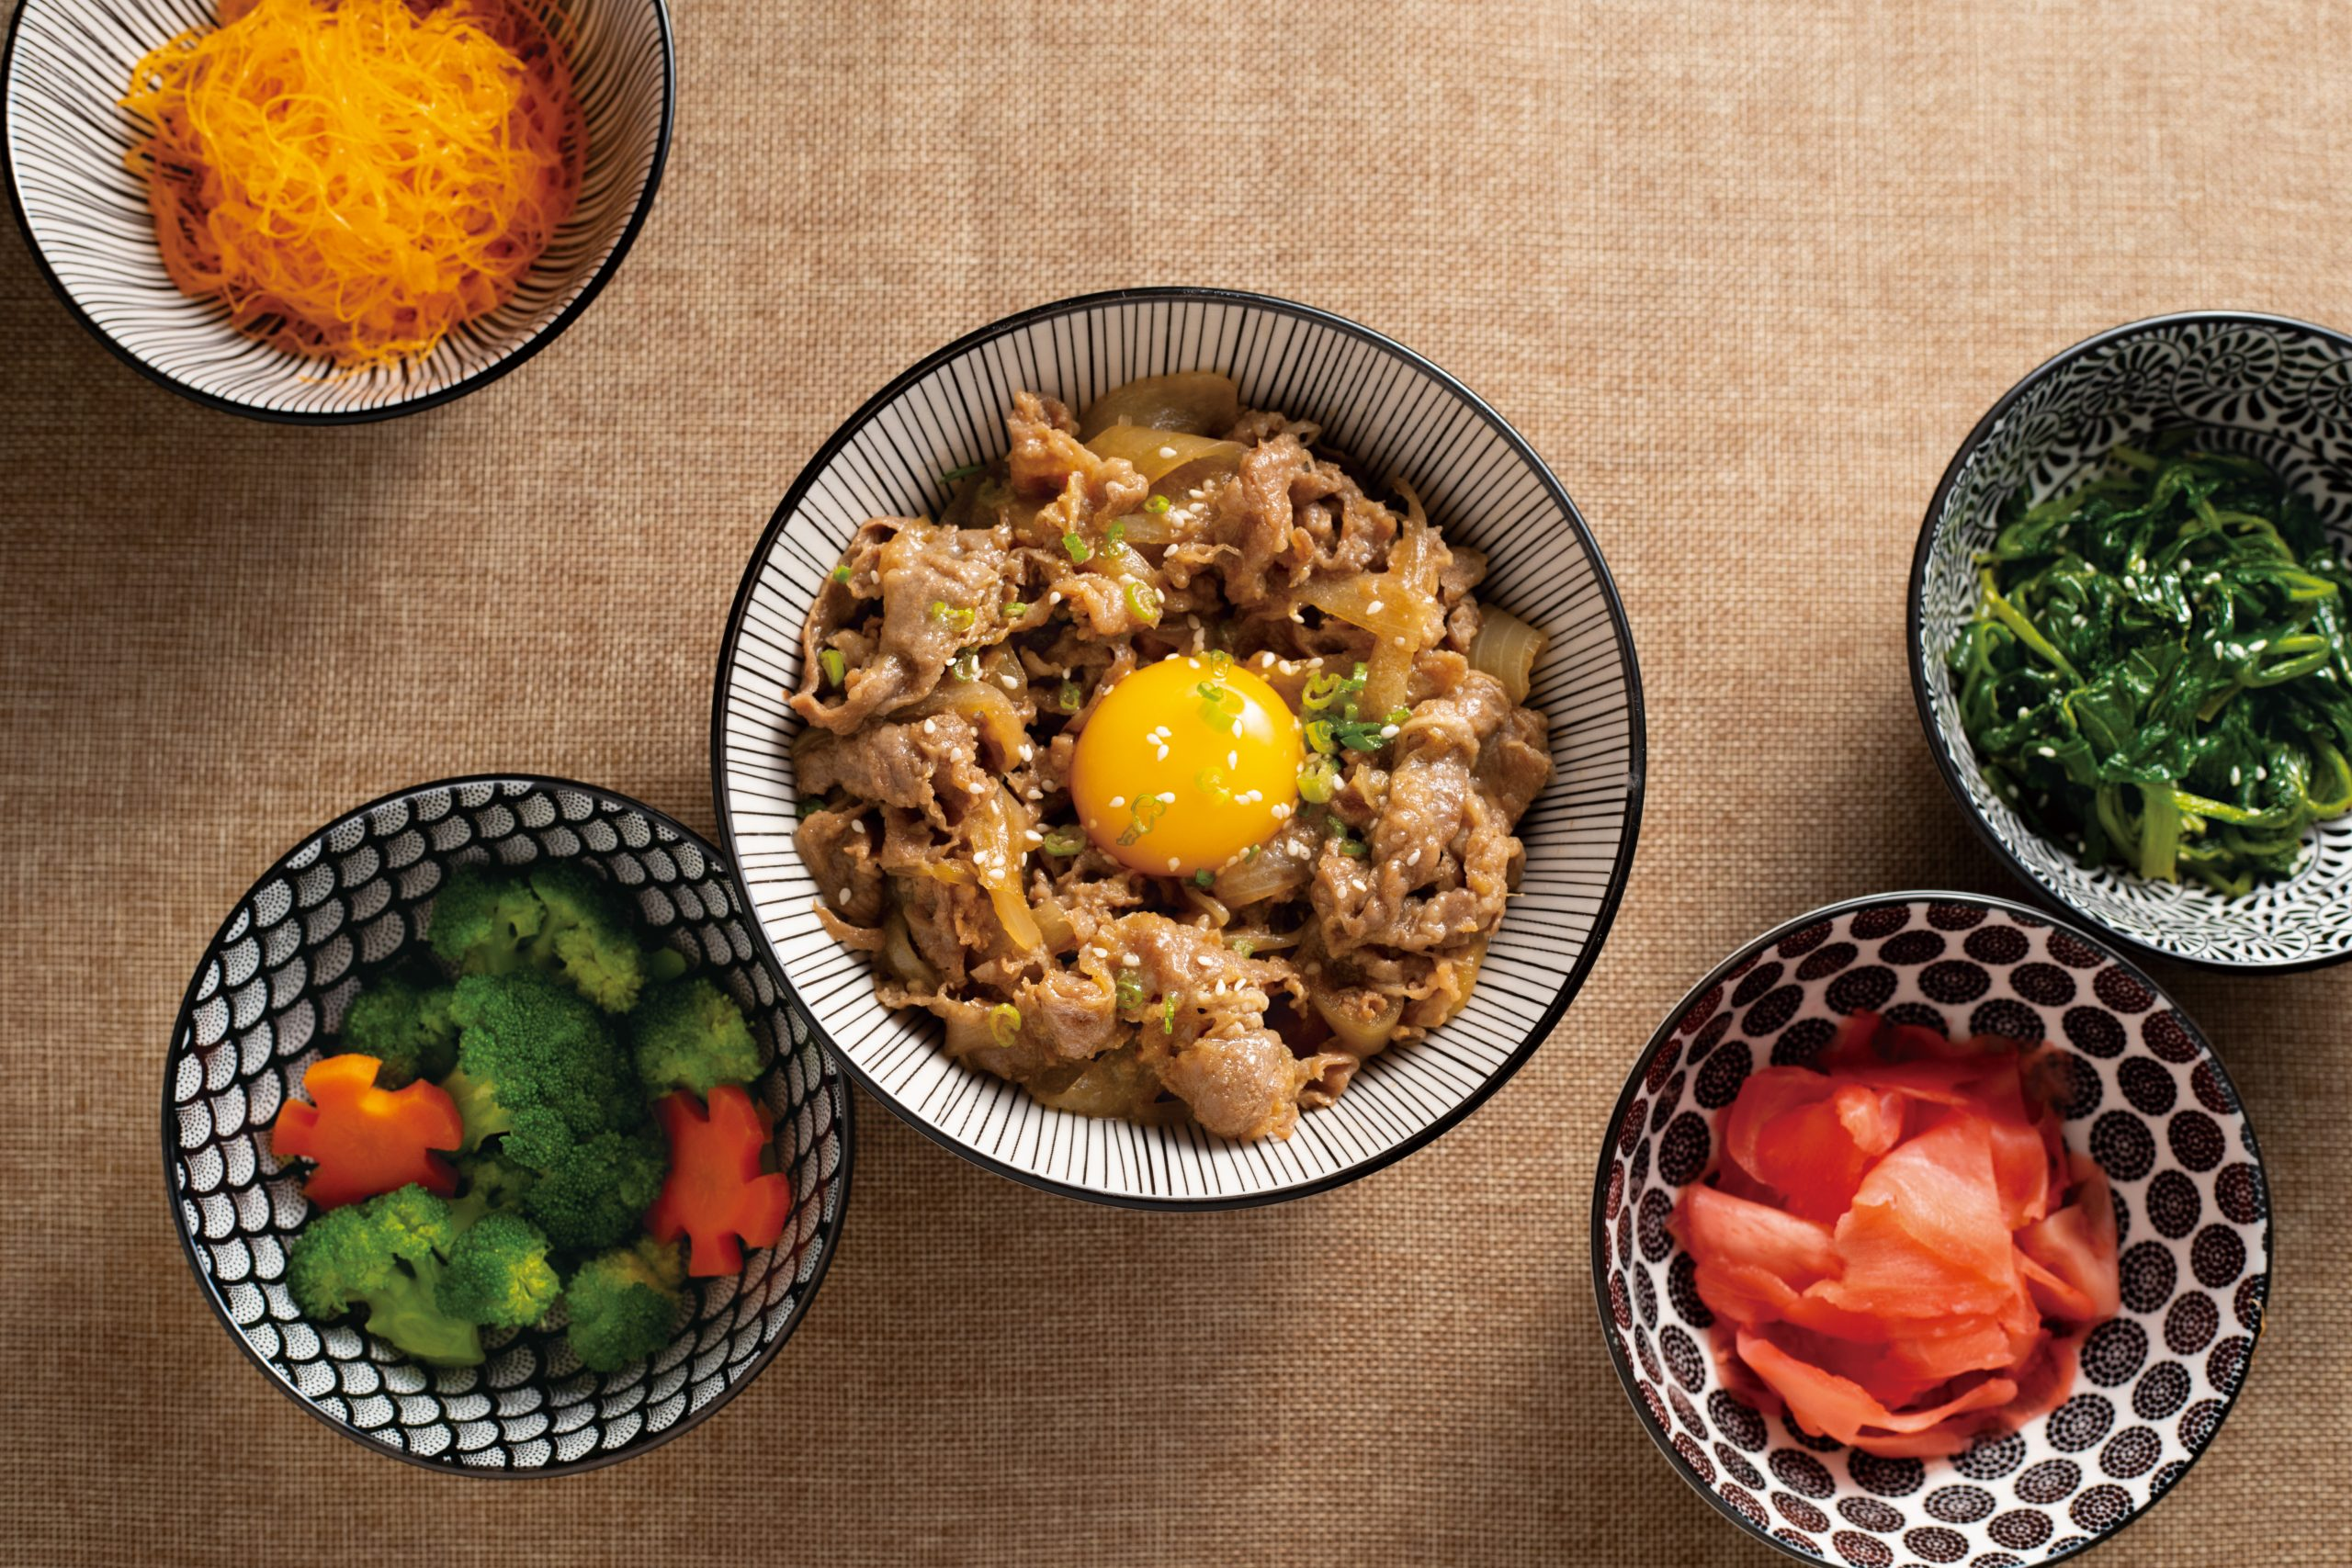 Recipes inspired by 13th solar term - Tricolour Beef Bowl